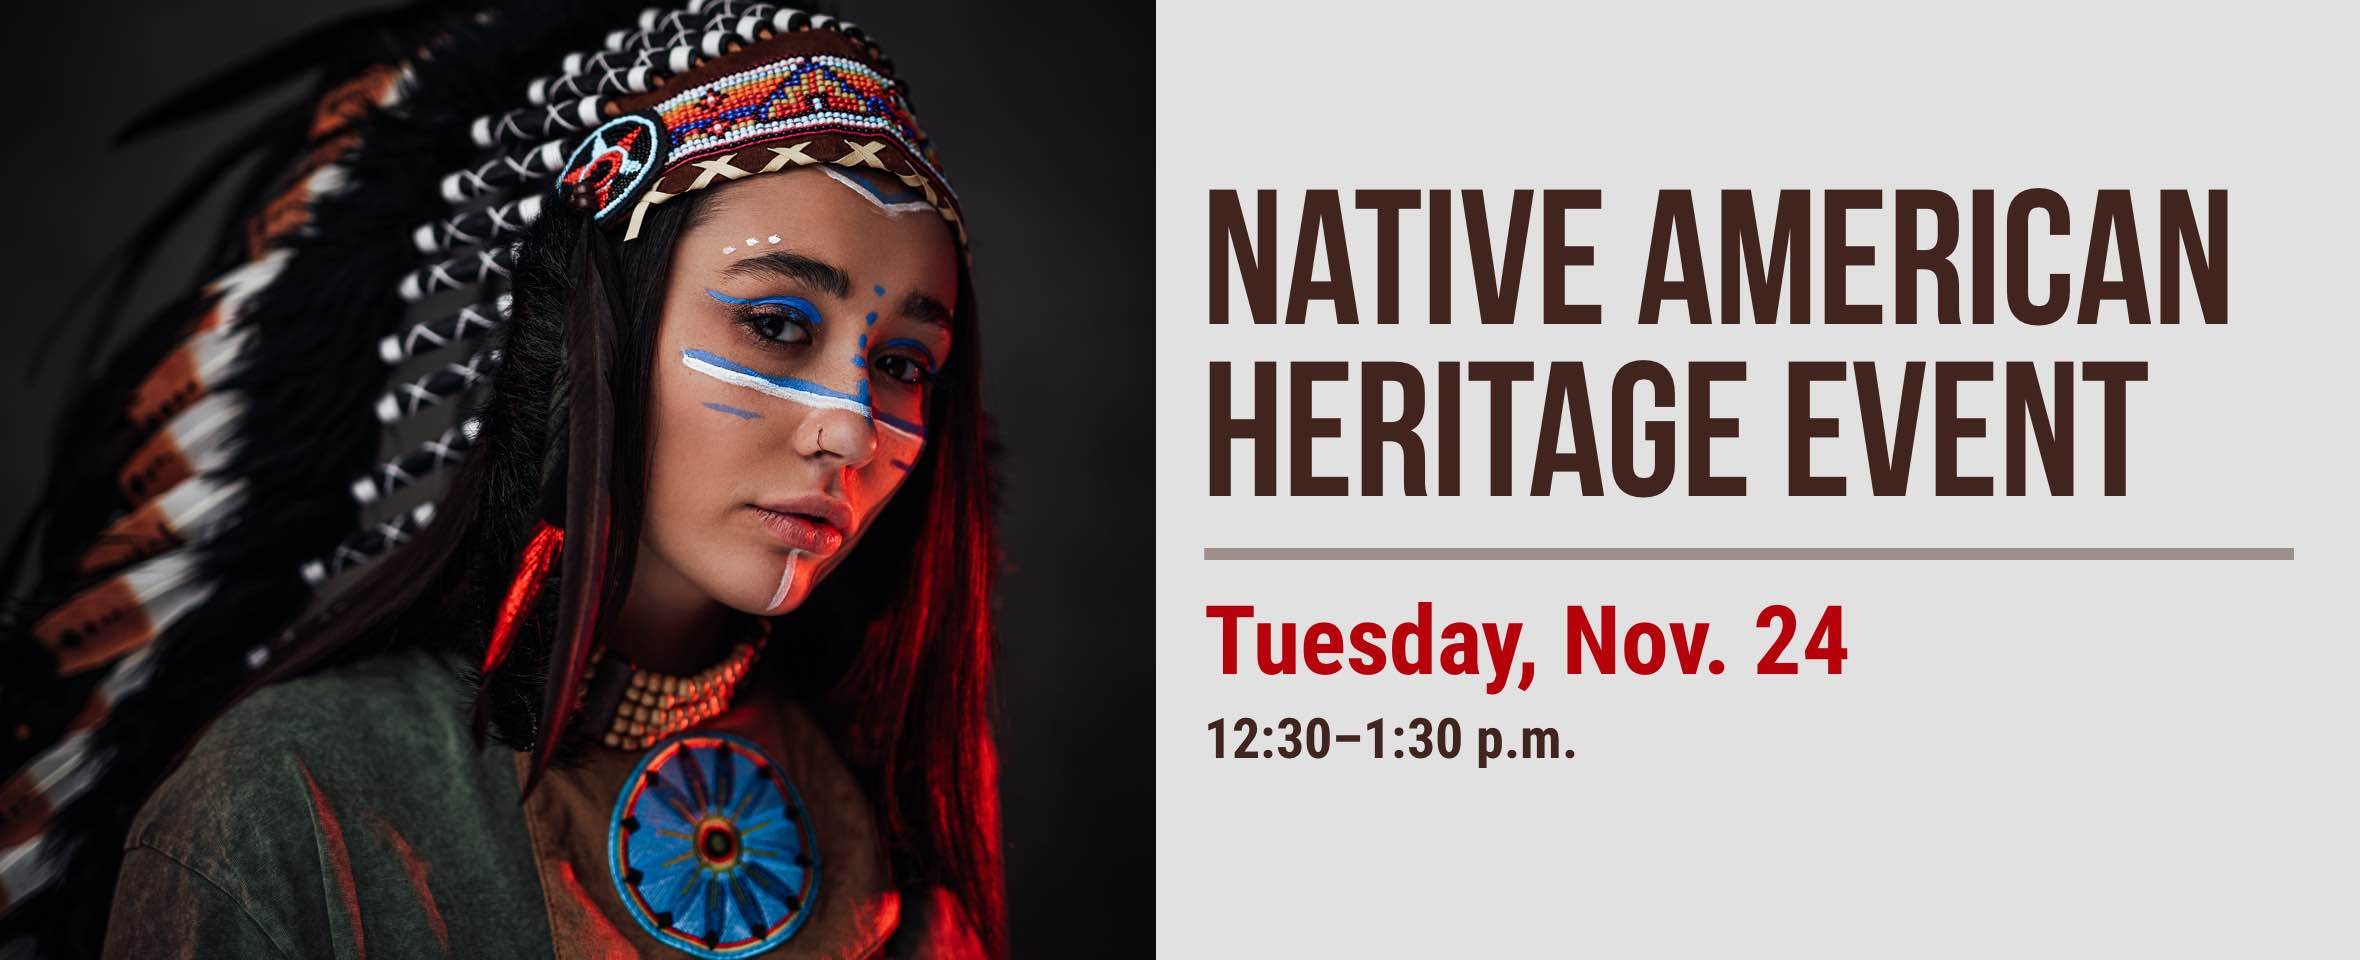 Native American Heritage Event